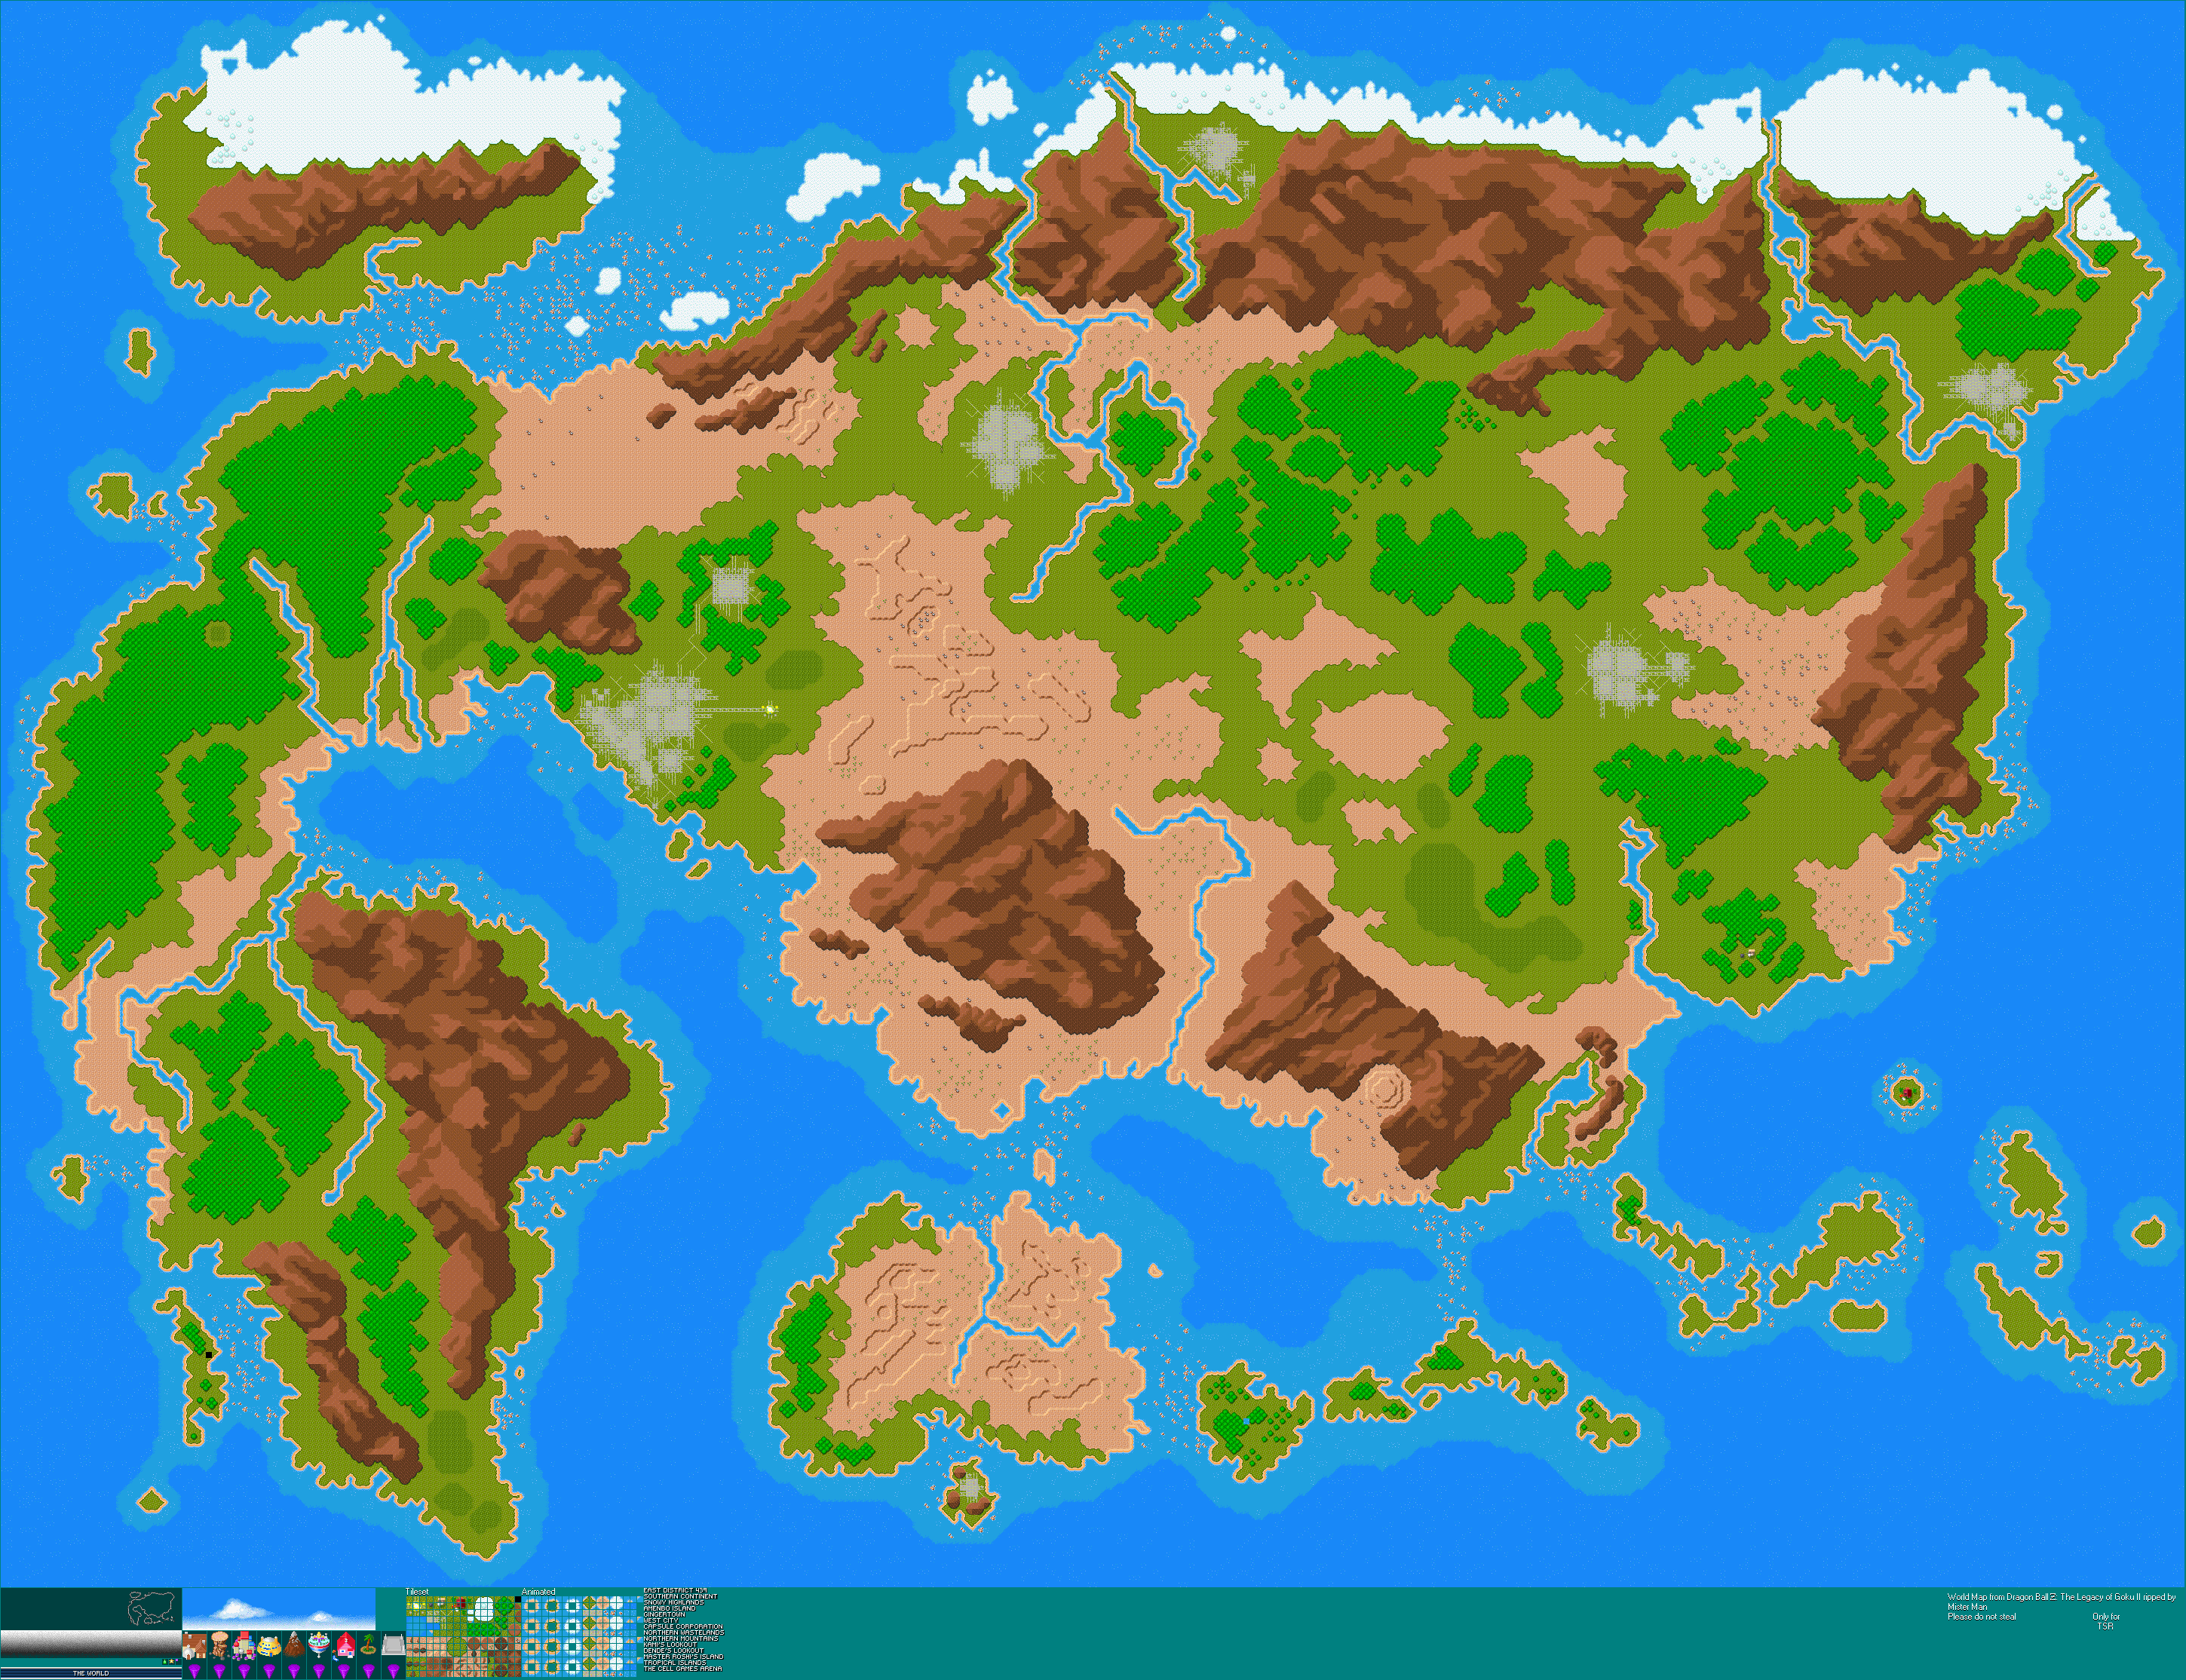 Game boy advance dragon ball z the legacy of goku ii world map click for full sized image world map gumiabroncs Gallery